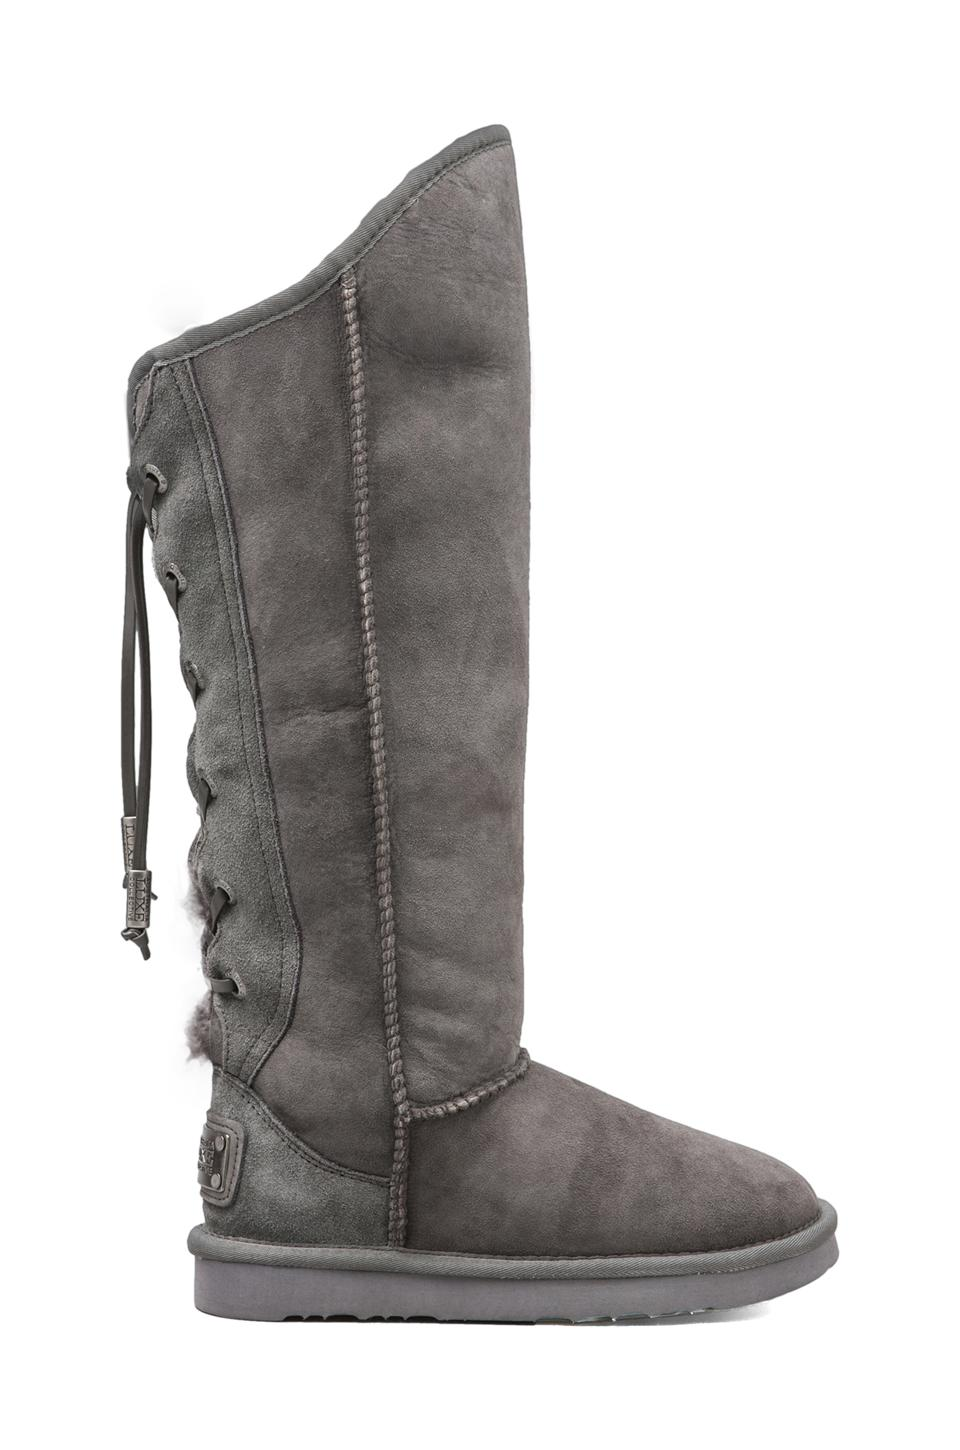 Australia Luxe Collective Dita Extra Tall with Sheep Shearling in Grey